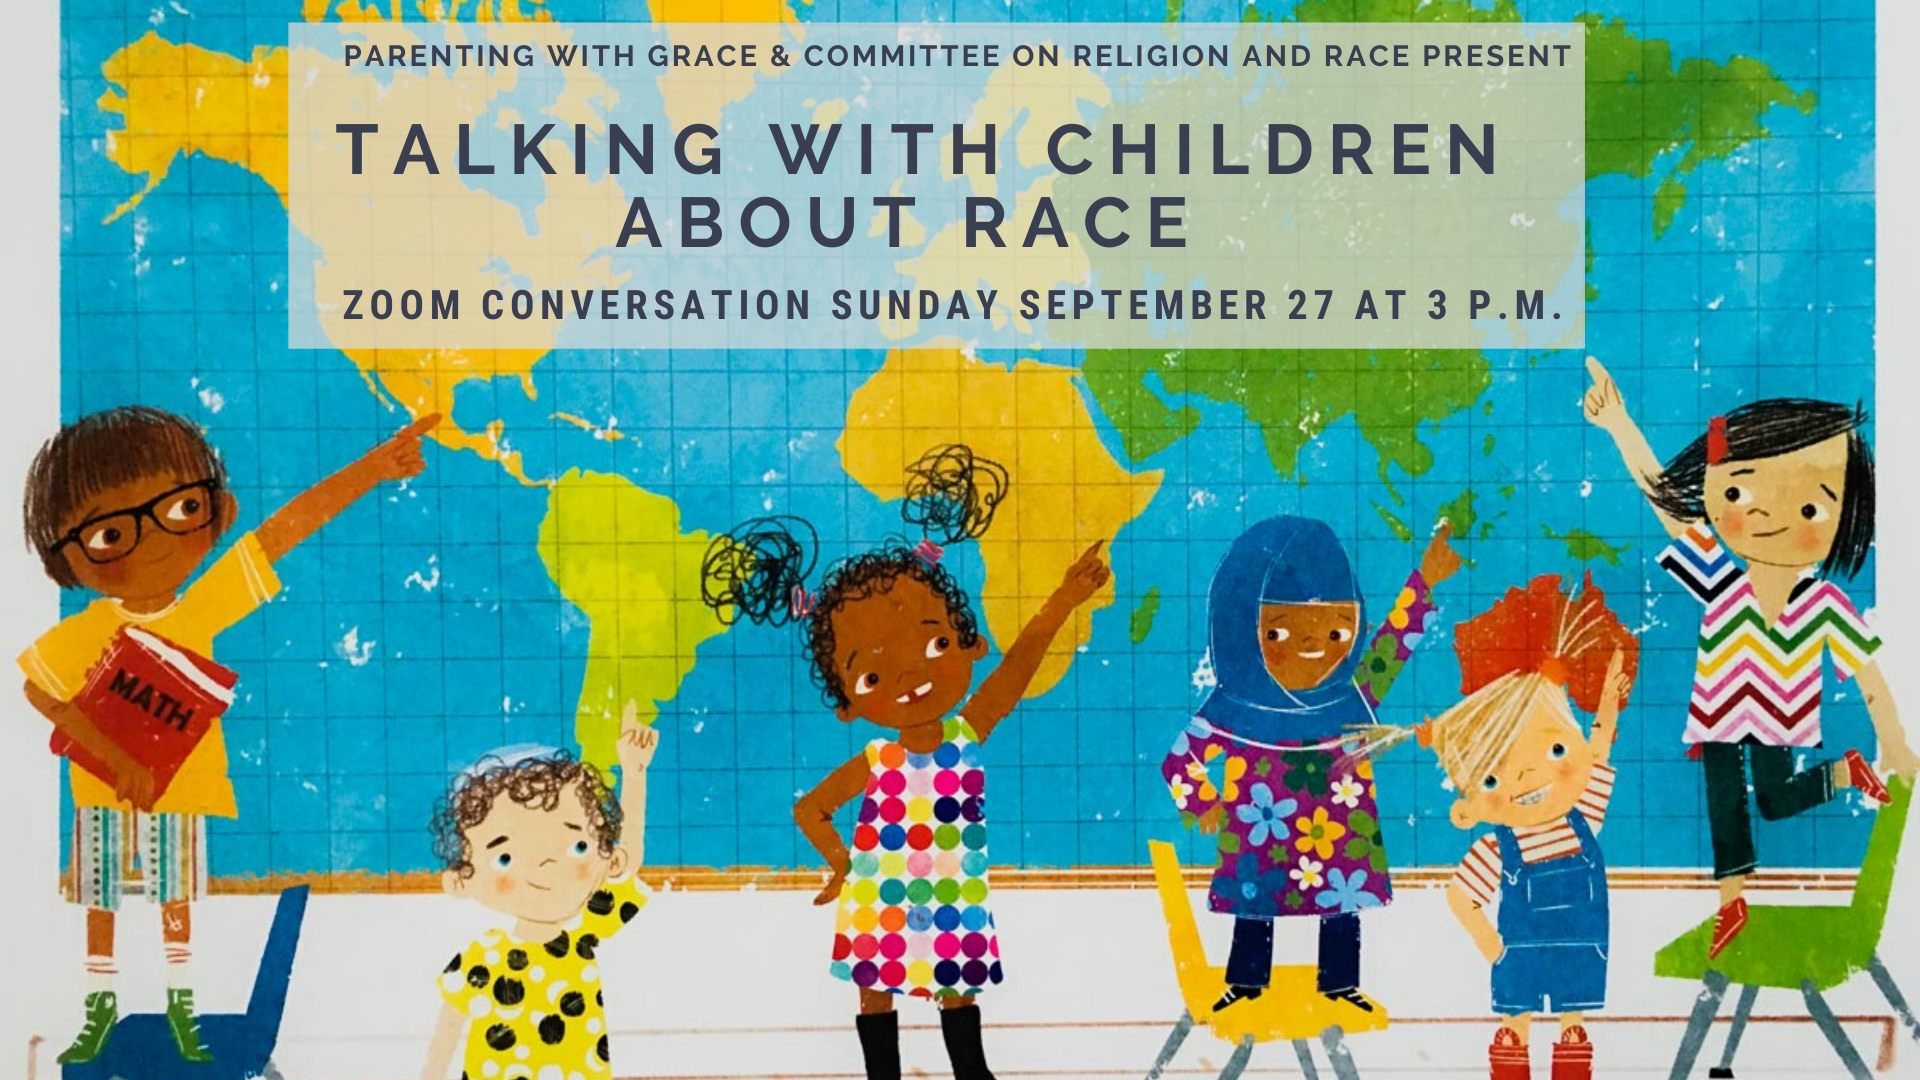 Talking with children about race at Grace